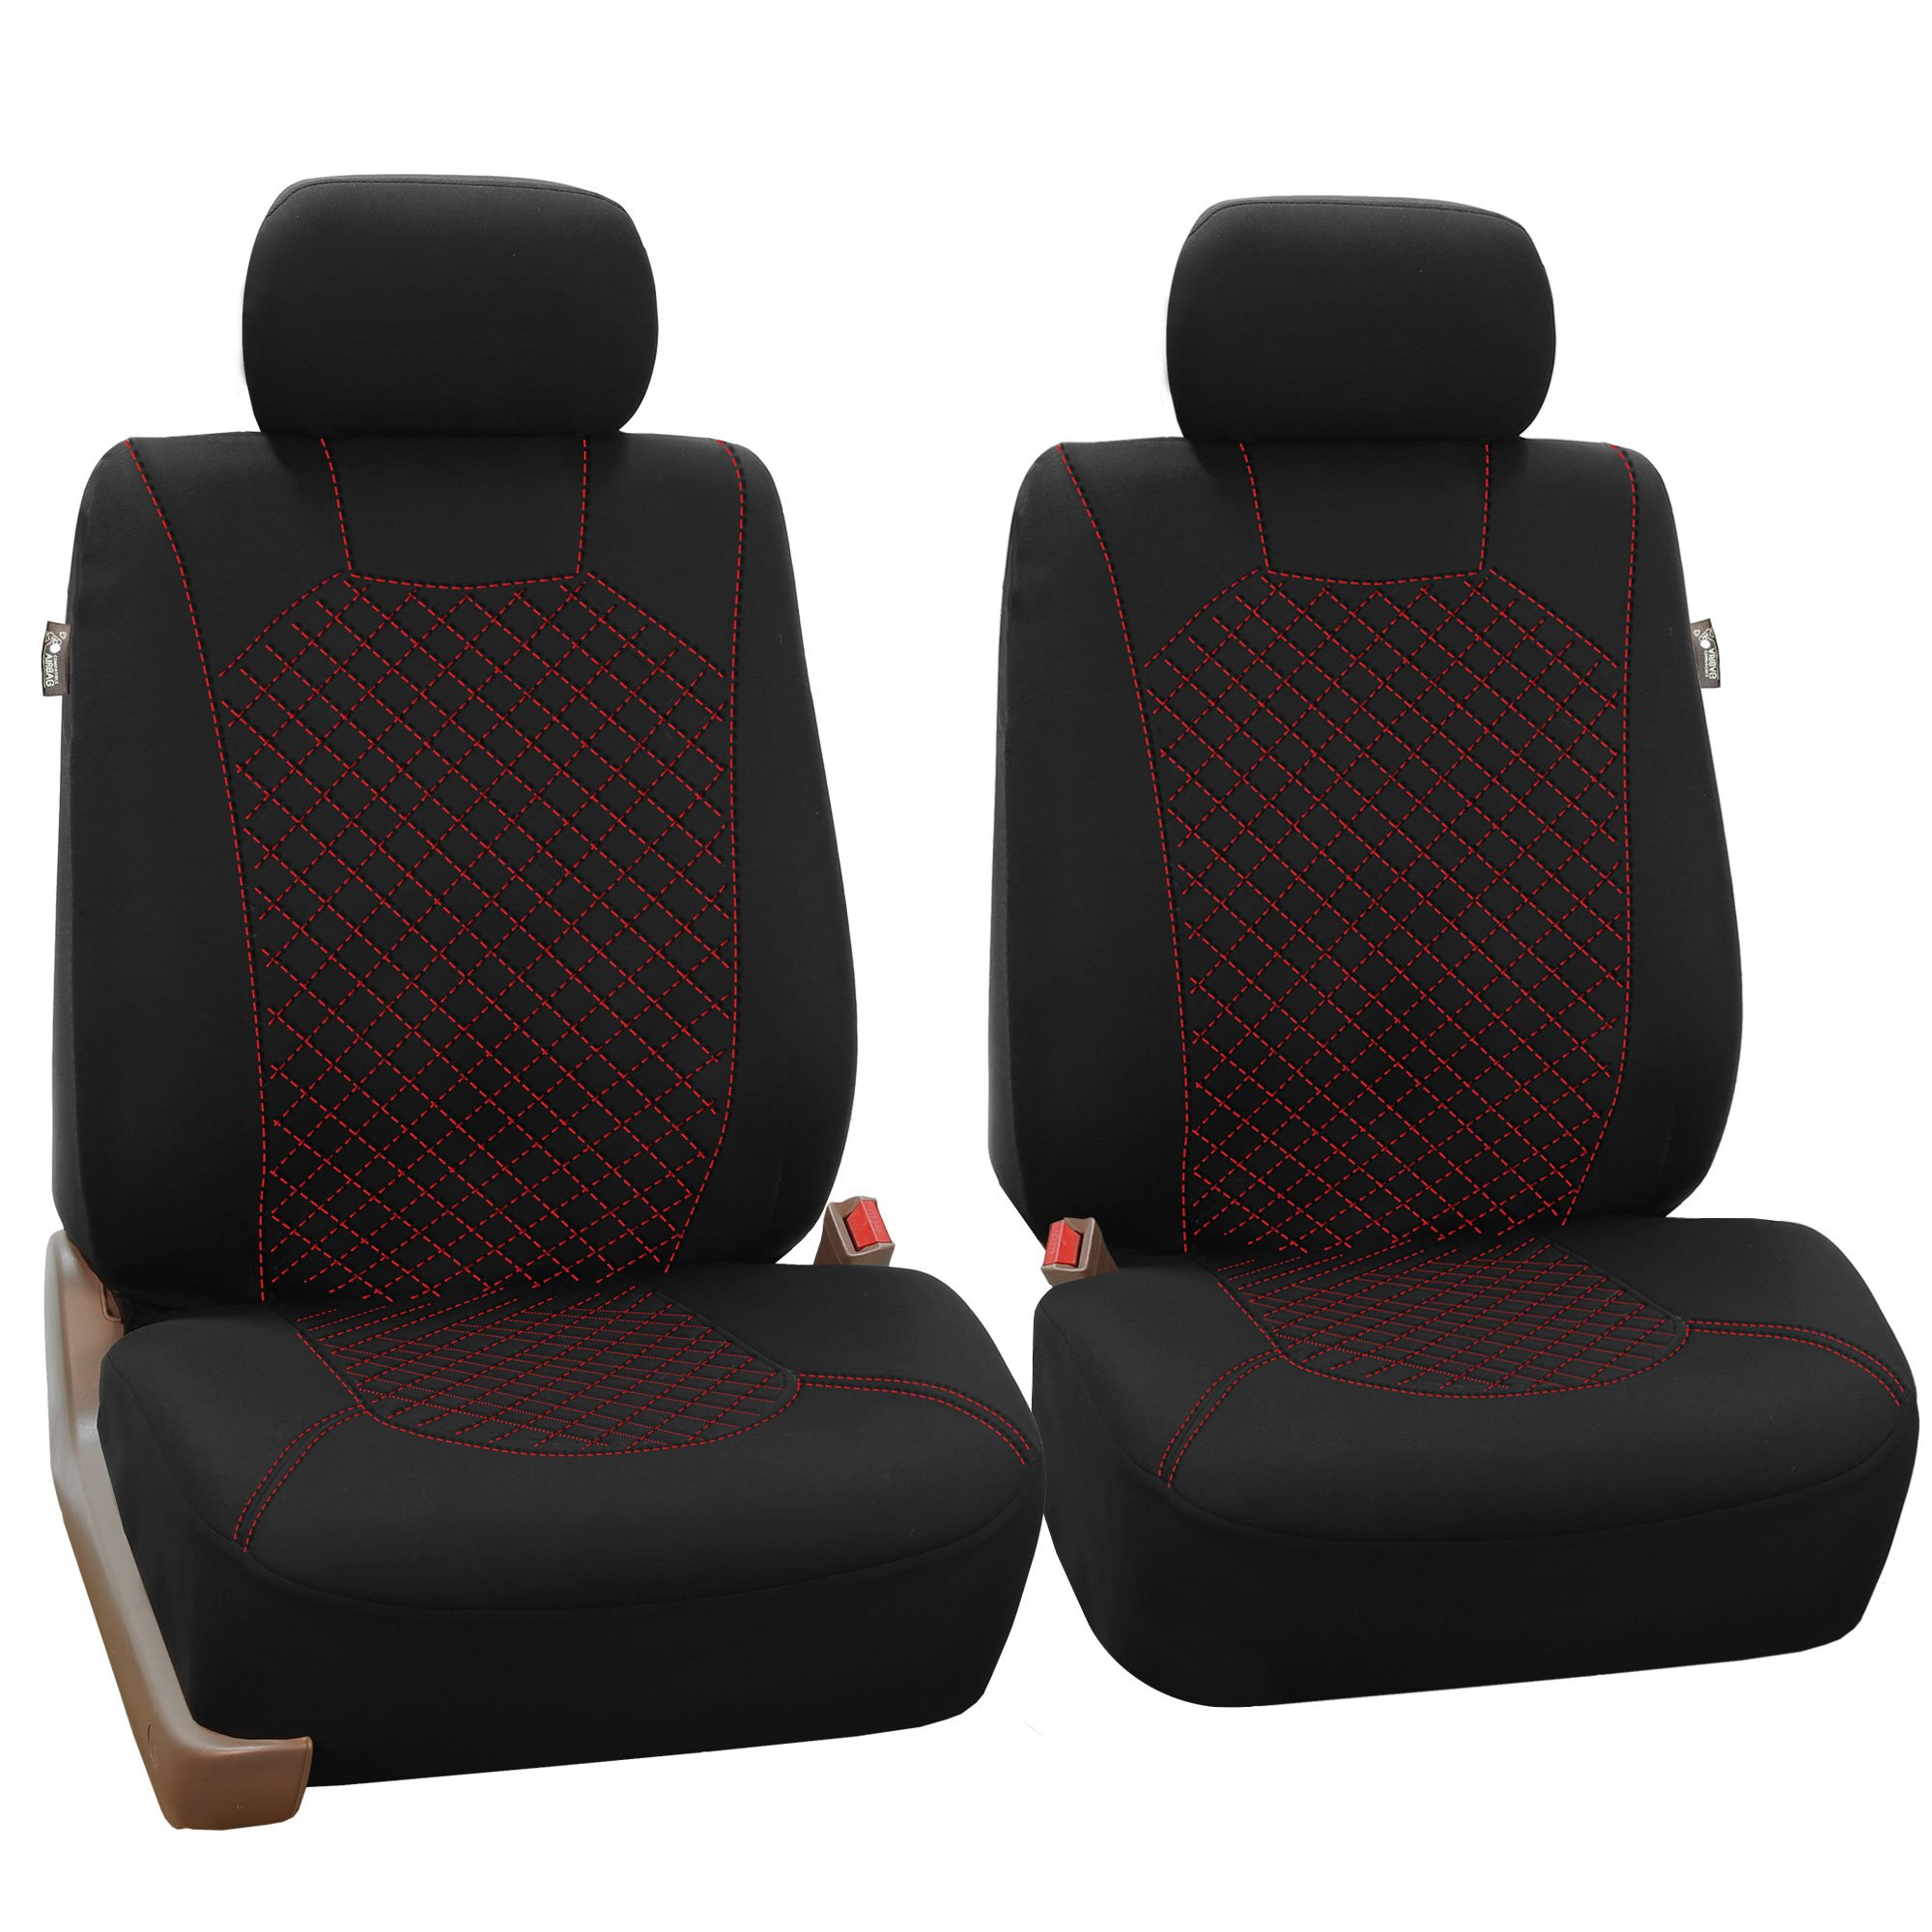 FH Group FB066102 Ornate Diamond Stitching Car Seat Covers Red/Black Color- Fit Most Car, Truck, SUV, or Van by FH Group